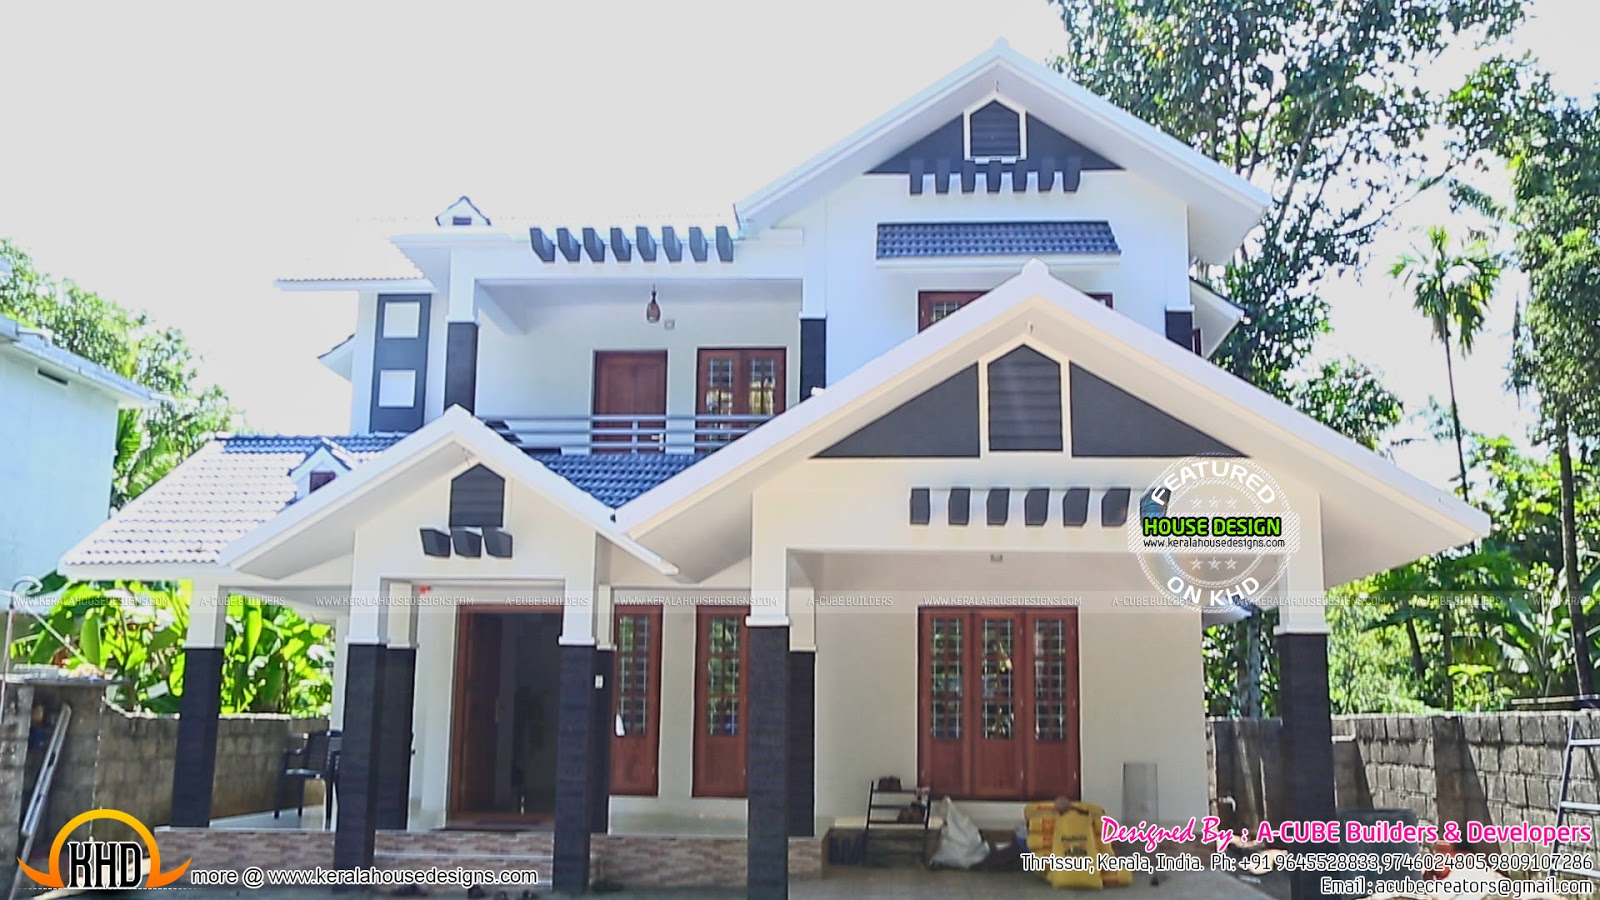 New house plans for 2016 starts here kerala home design for House design ideas 2016